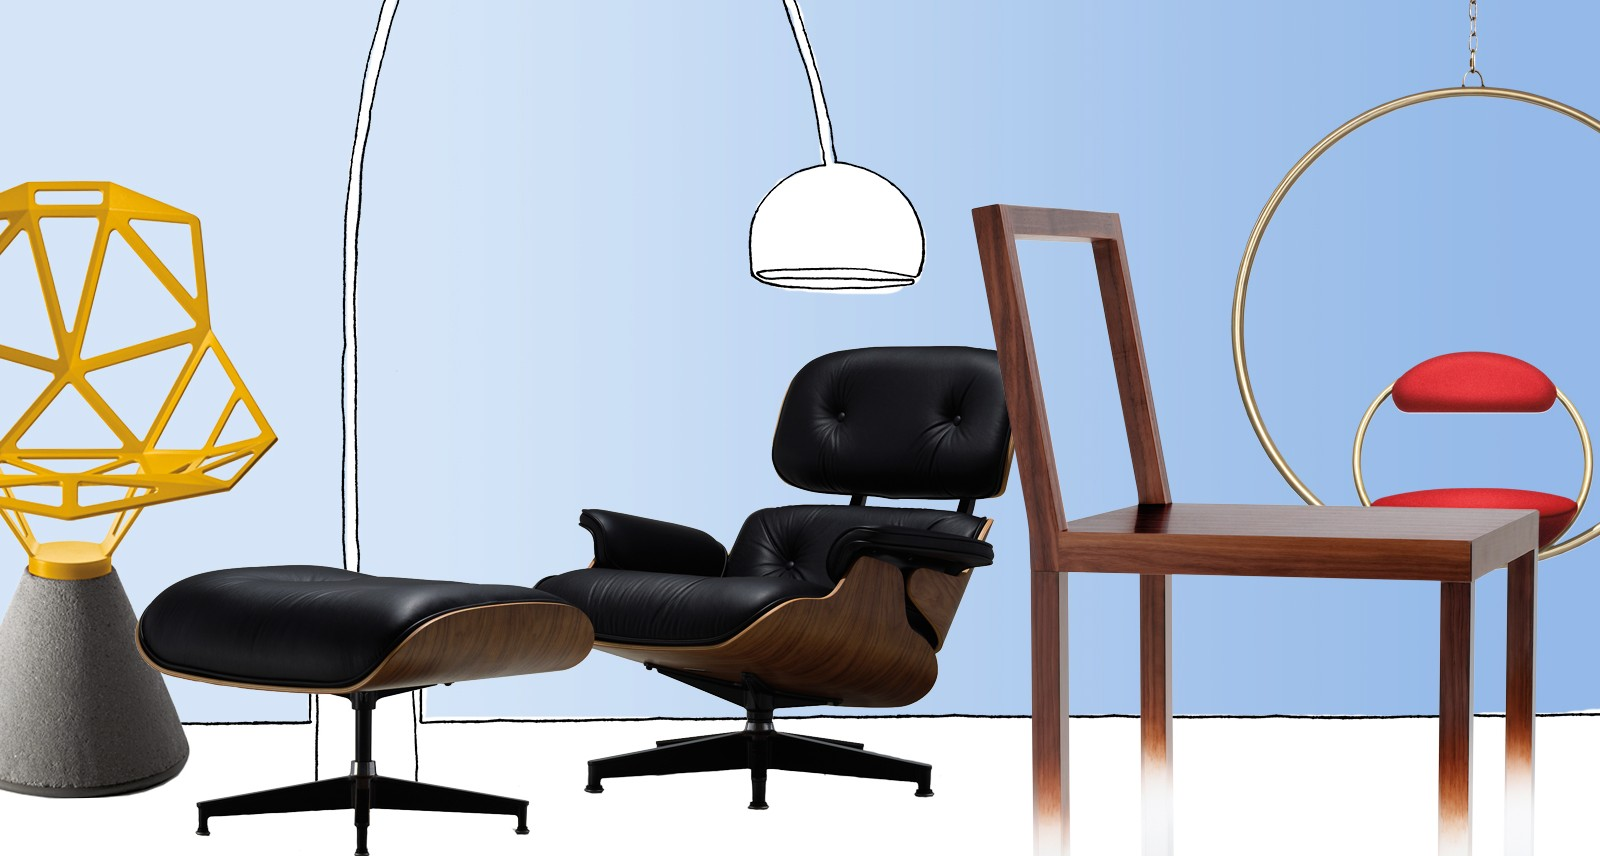 Chair Raising: The 15 Greatest Chairs Ever Designed